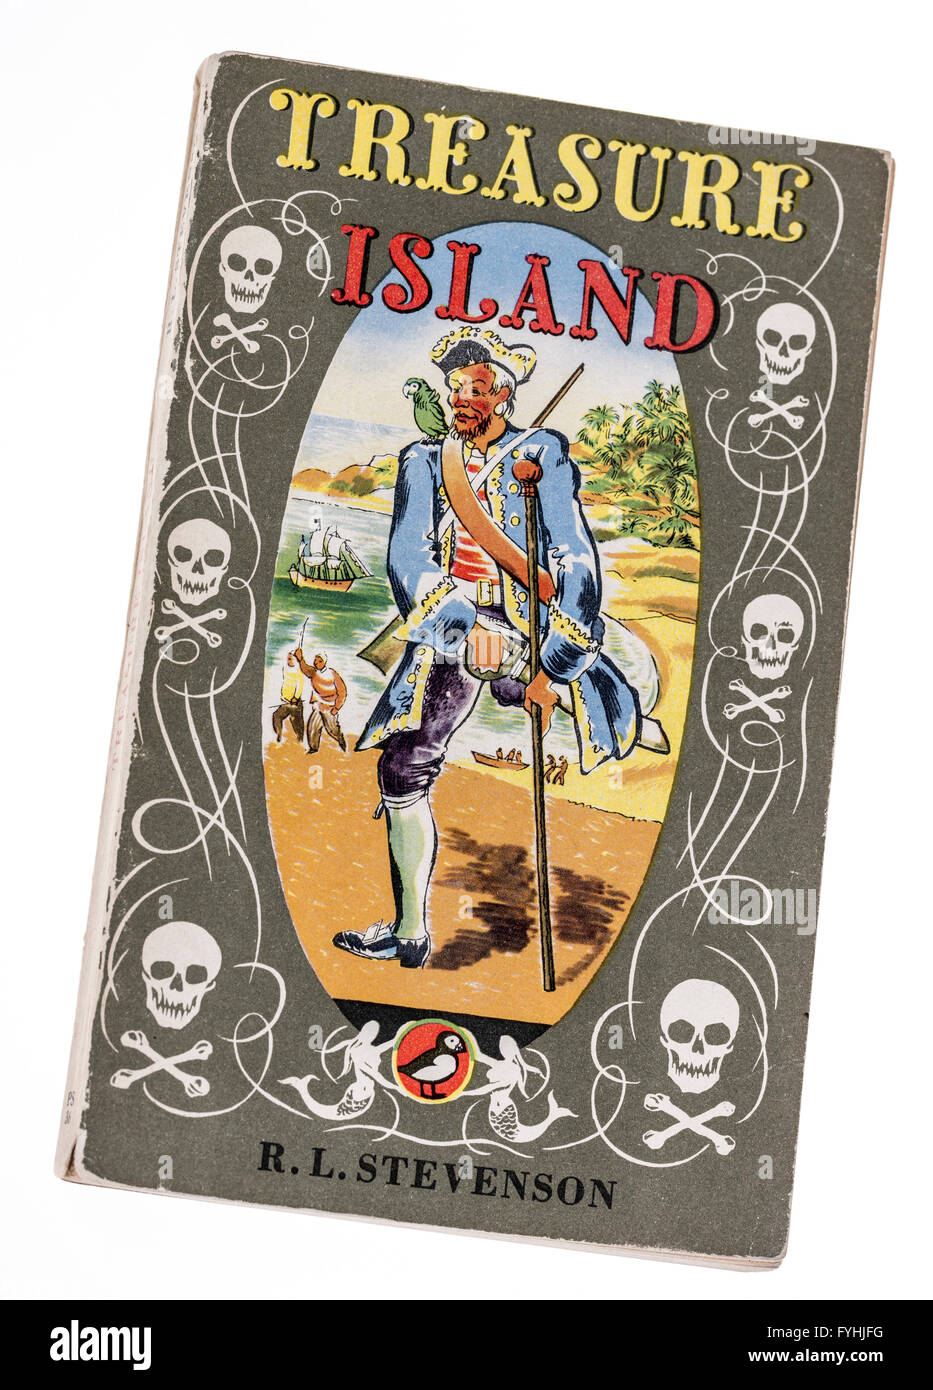 Treasure Island book cover by Robert Louis Stevenson published by Puffin - Stock Image